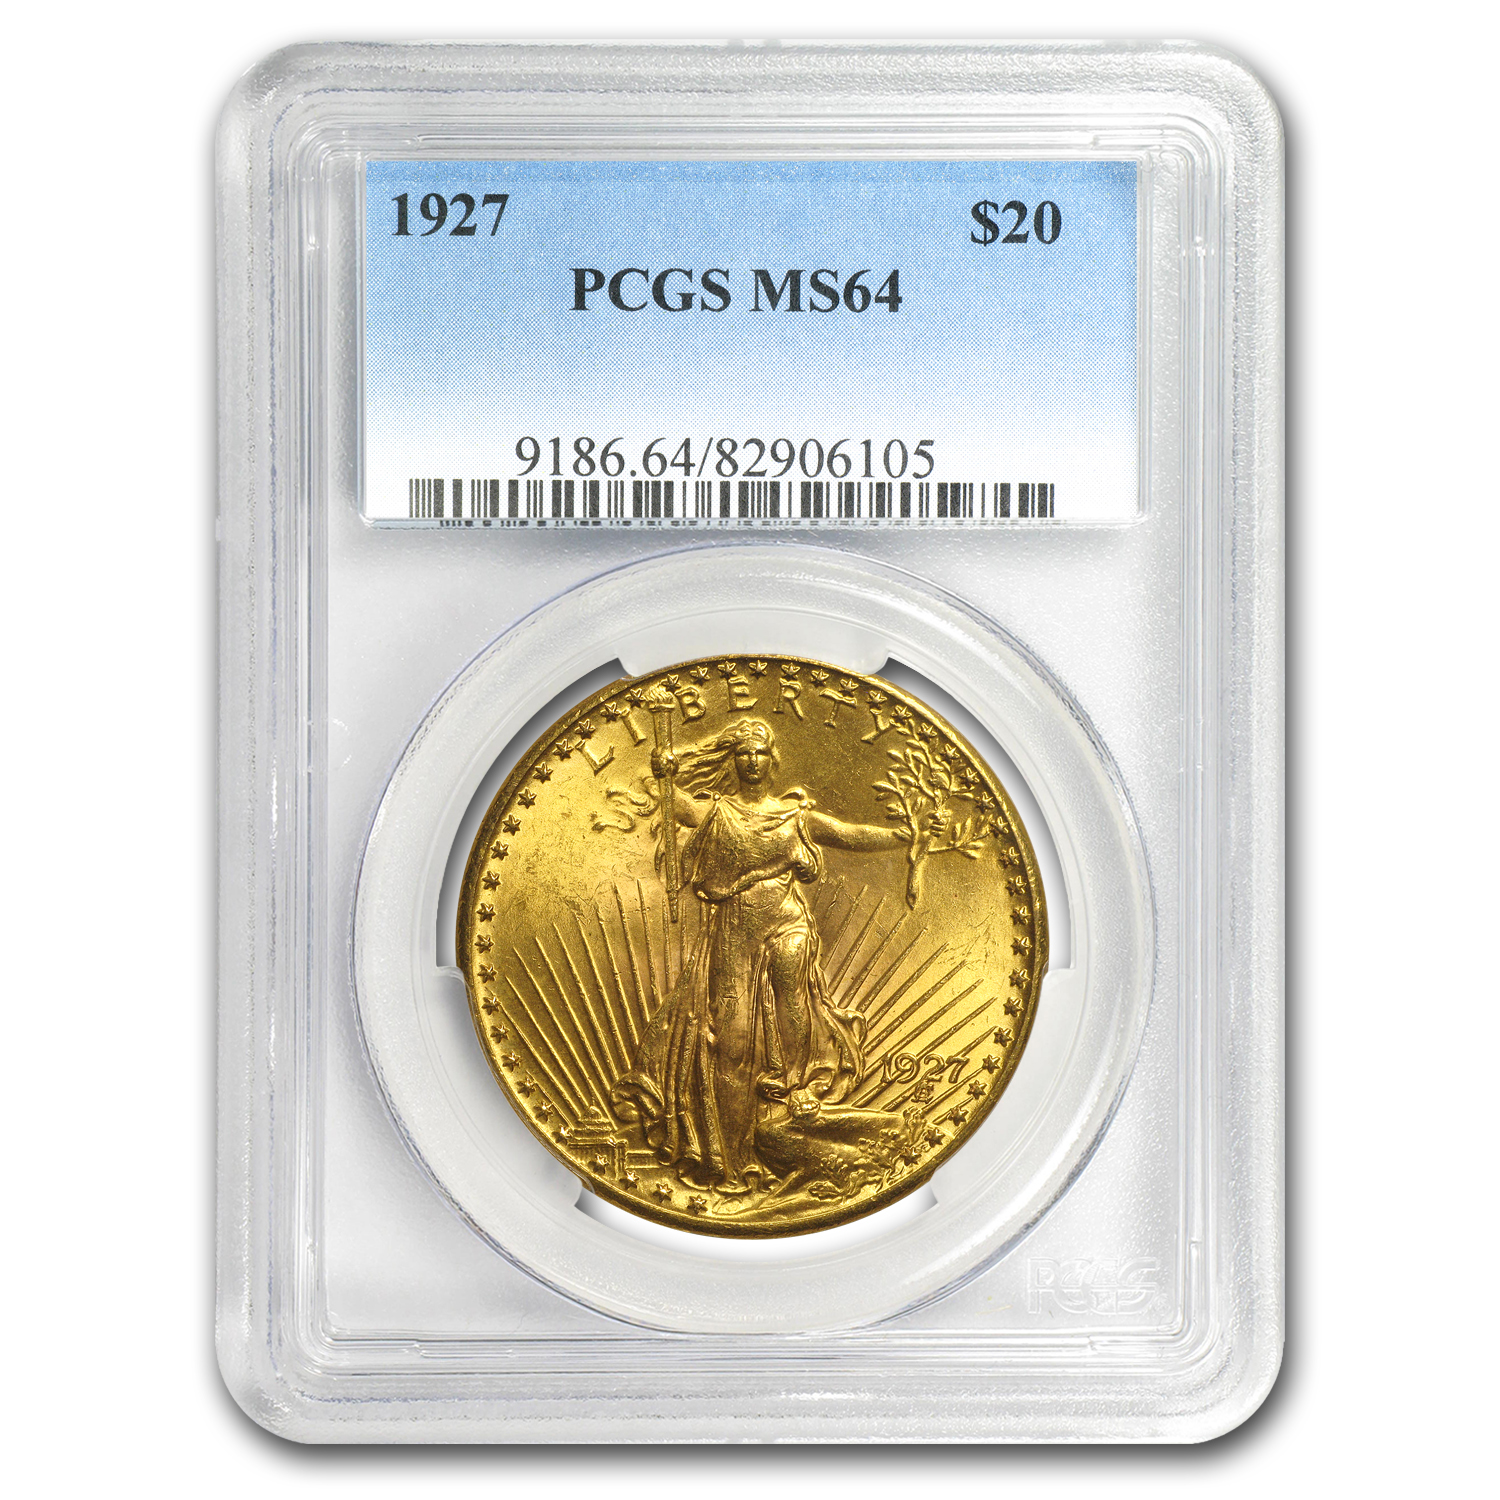 1927 $20 St. Gaudens Gold Double Eagle - MS-64 PCGS